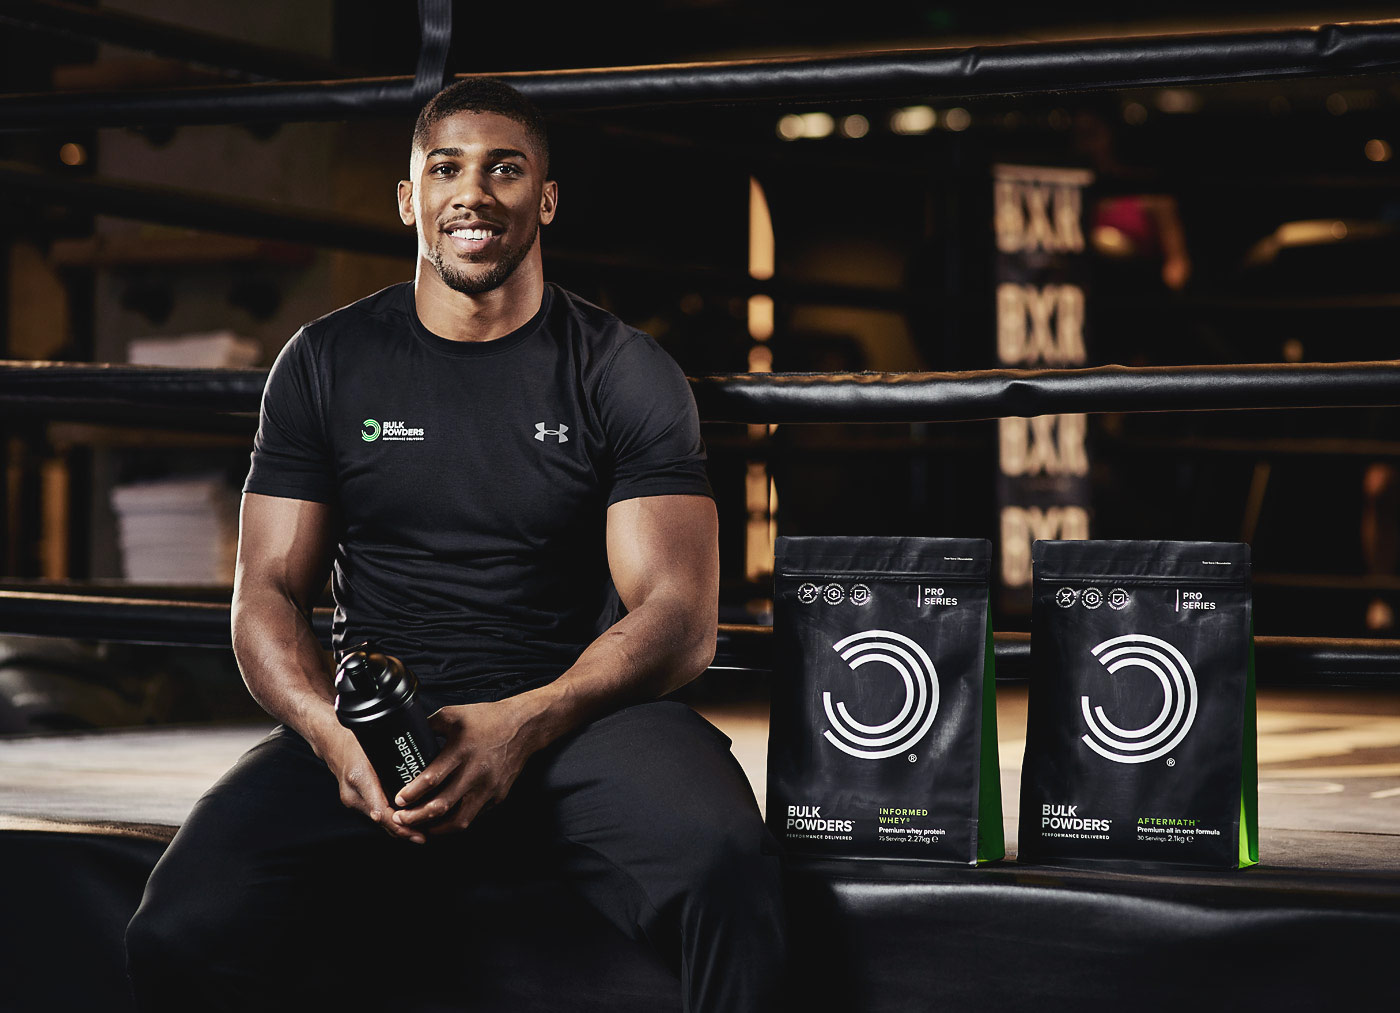 Anthony Joshua with Bulk Powders products